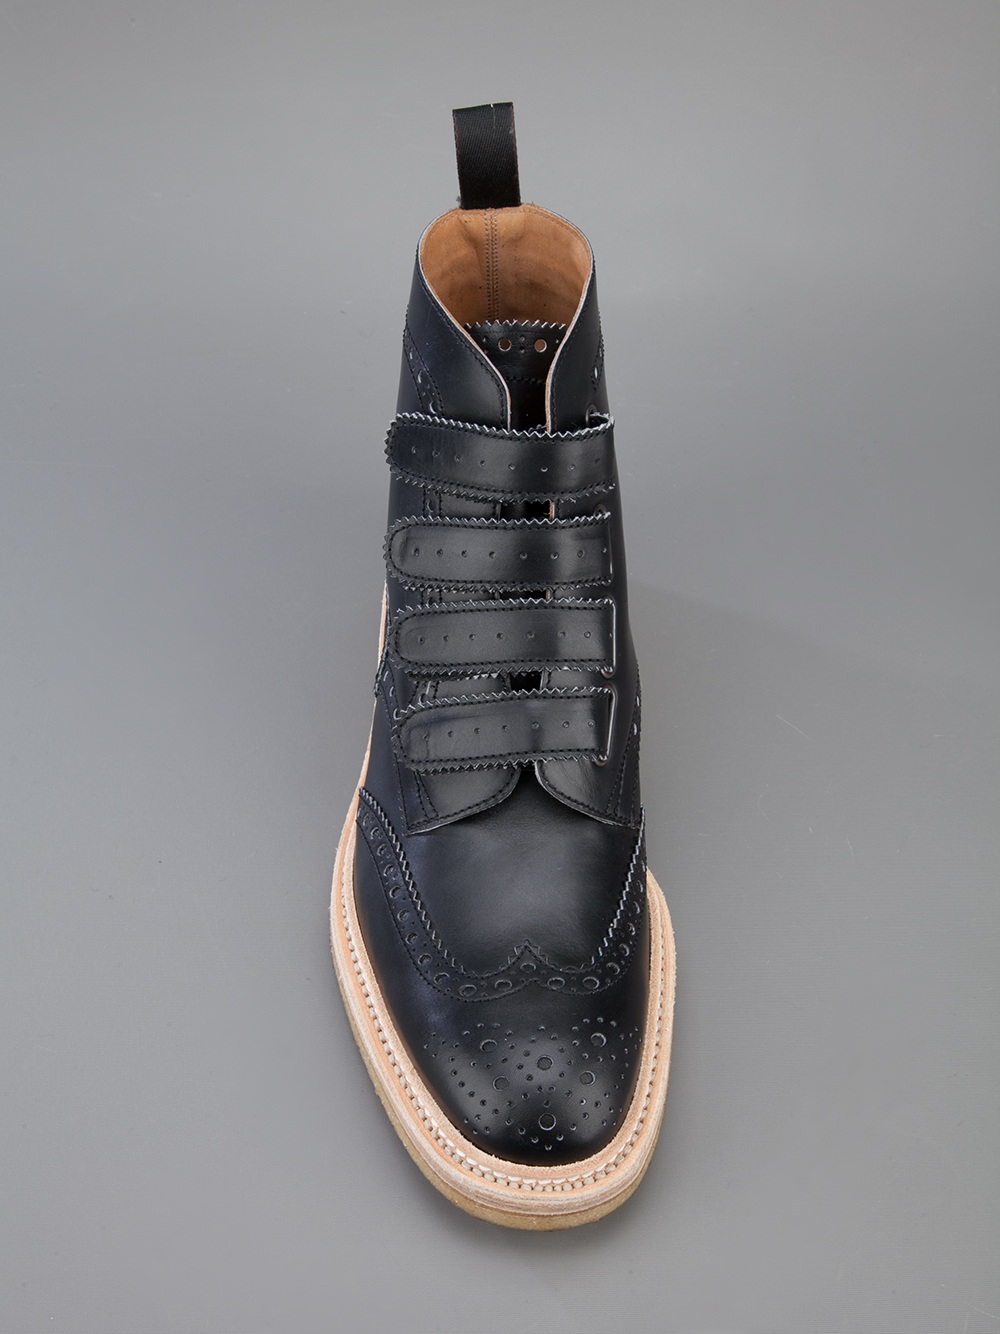 Lyst - Weber Hodel Feder High-Top Calf-Leather Brogues In -5897